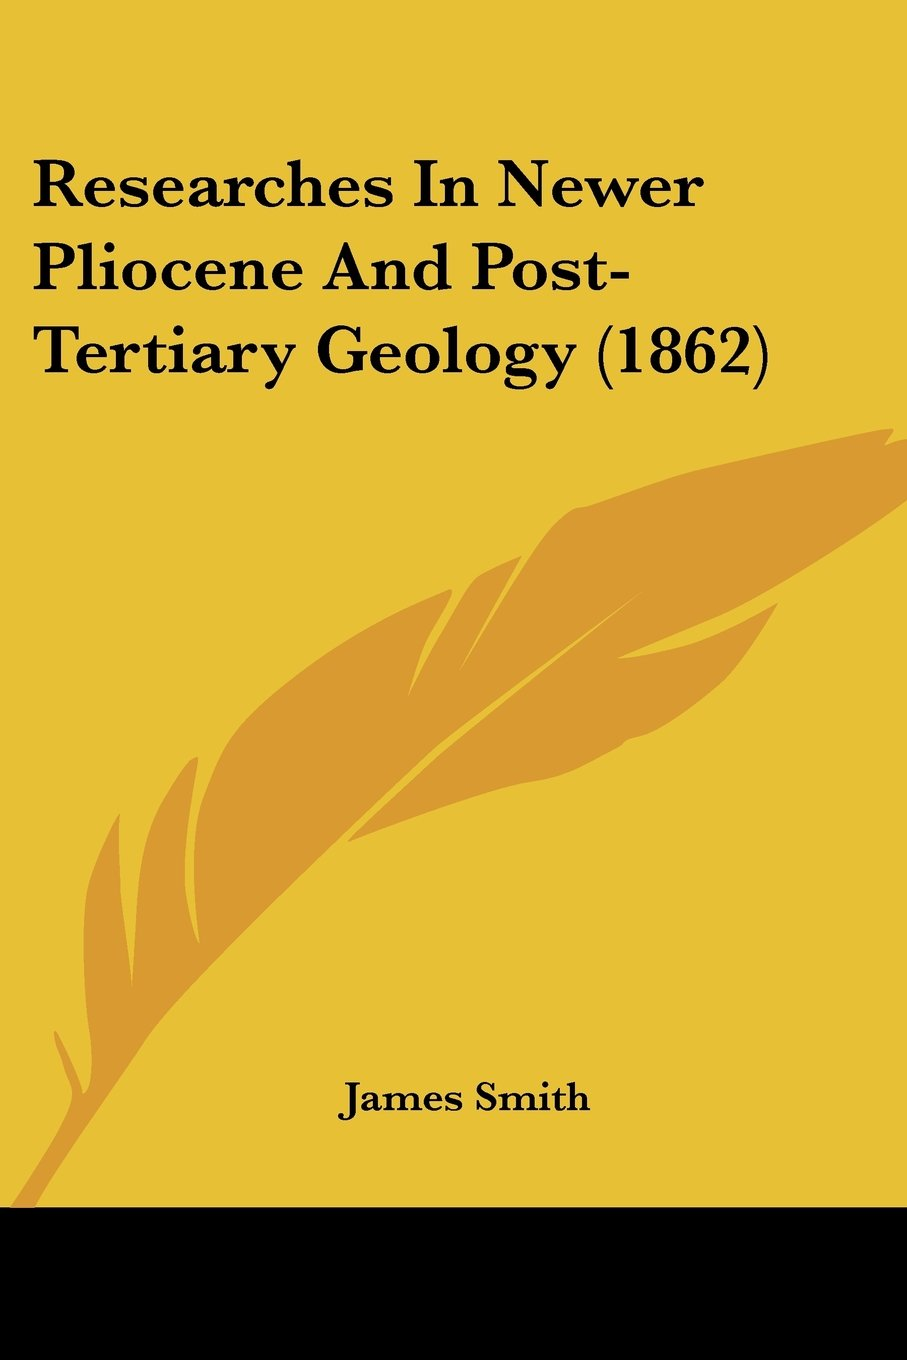 Download Researches In Newer Pliocene And Post-Tertiary Geology (1862) ebook